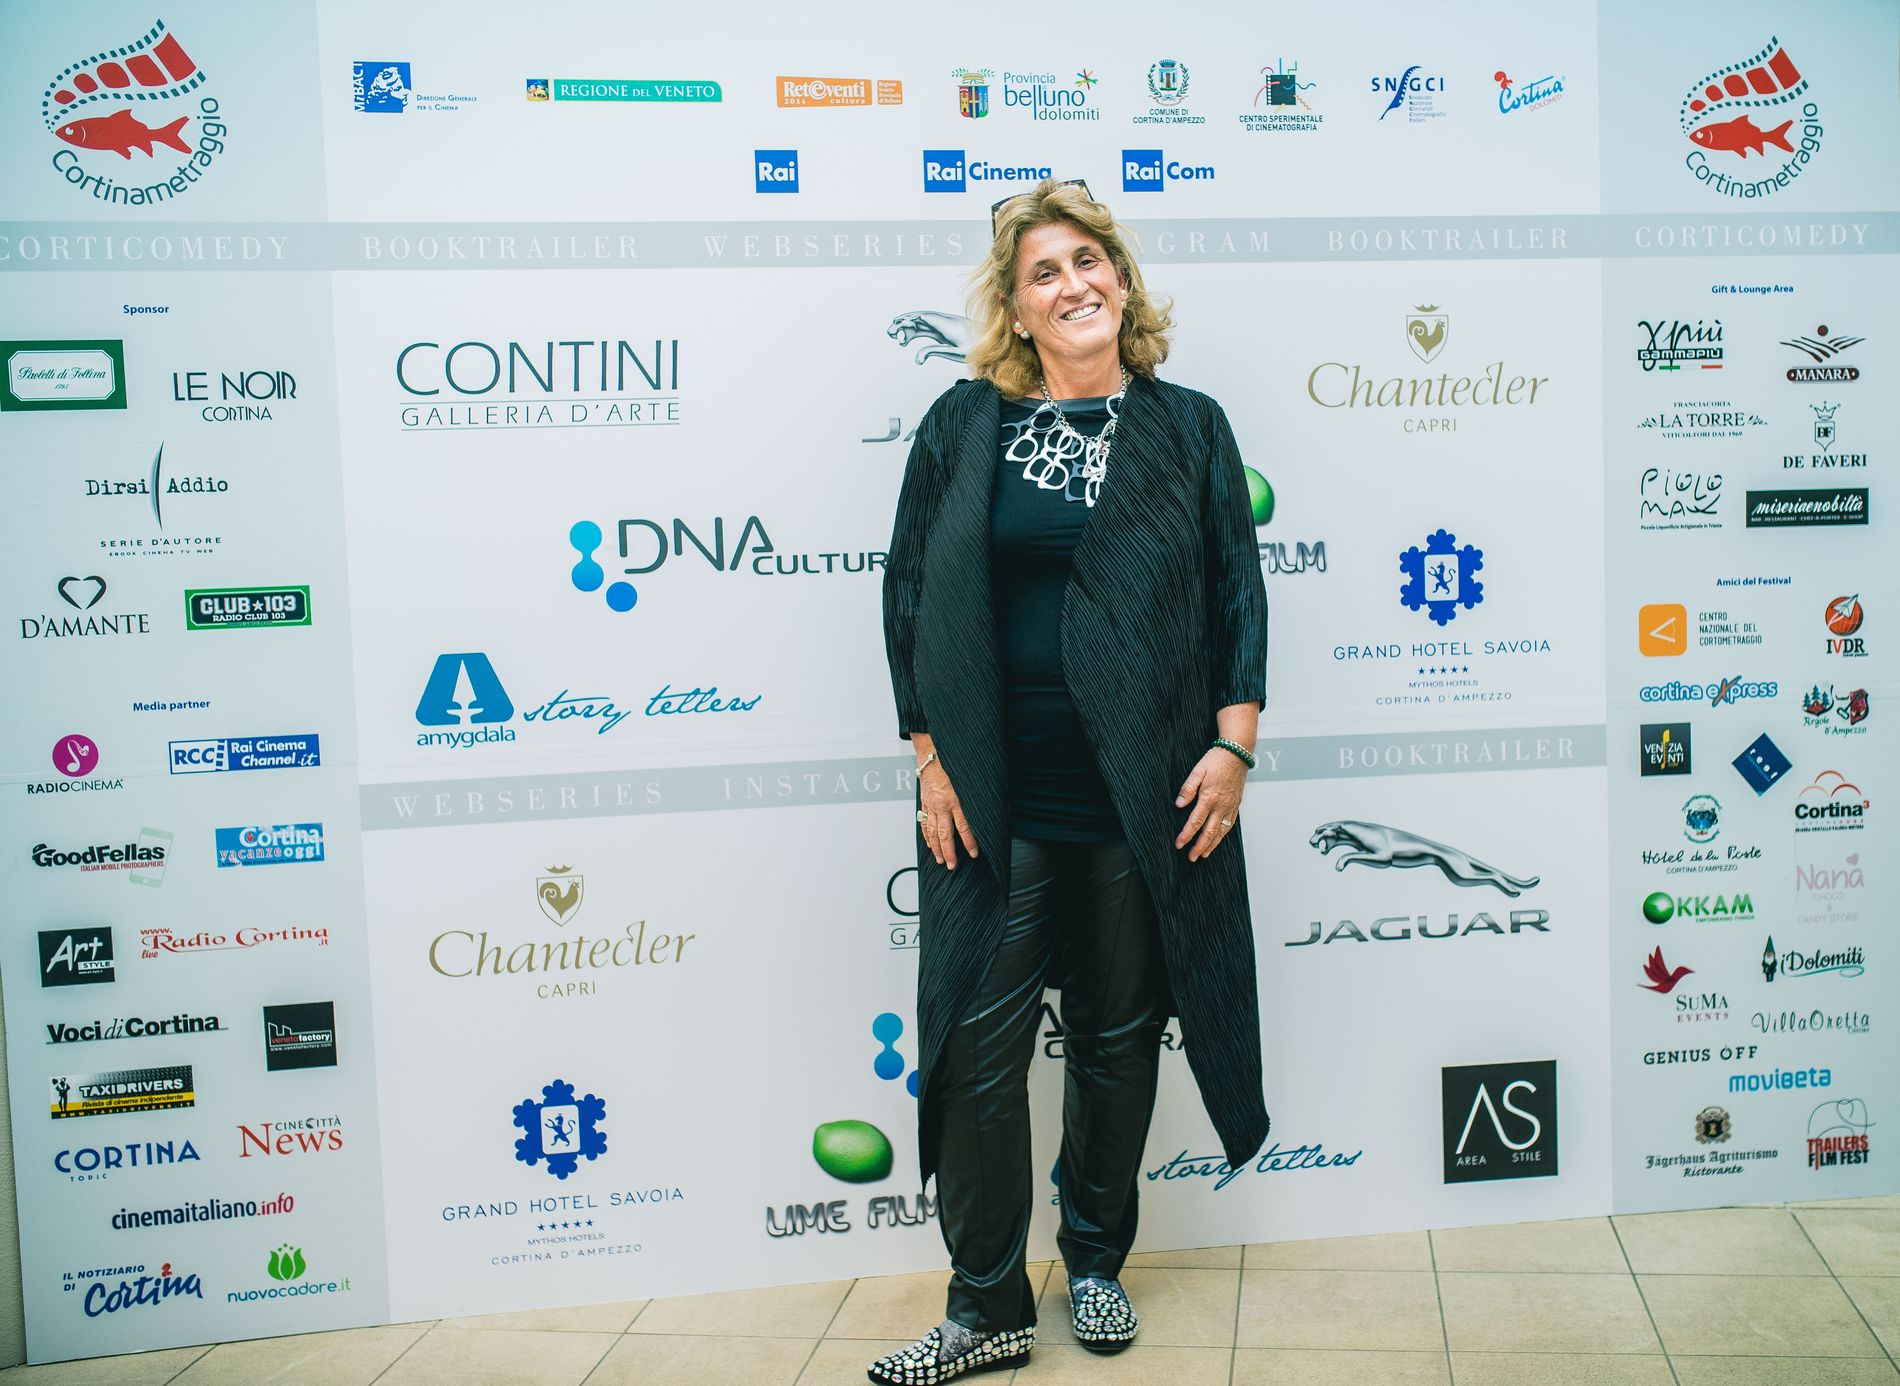 Photocall Cortinametraggio 2015